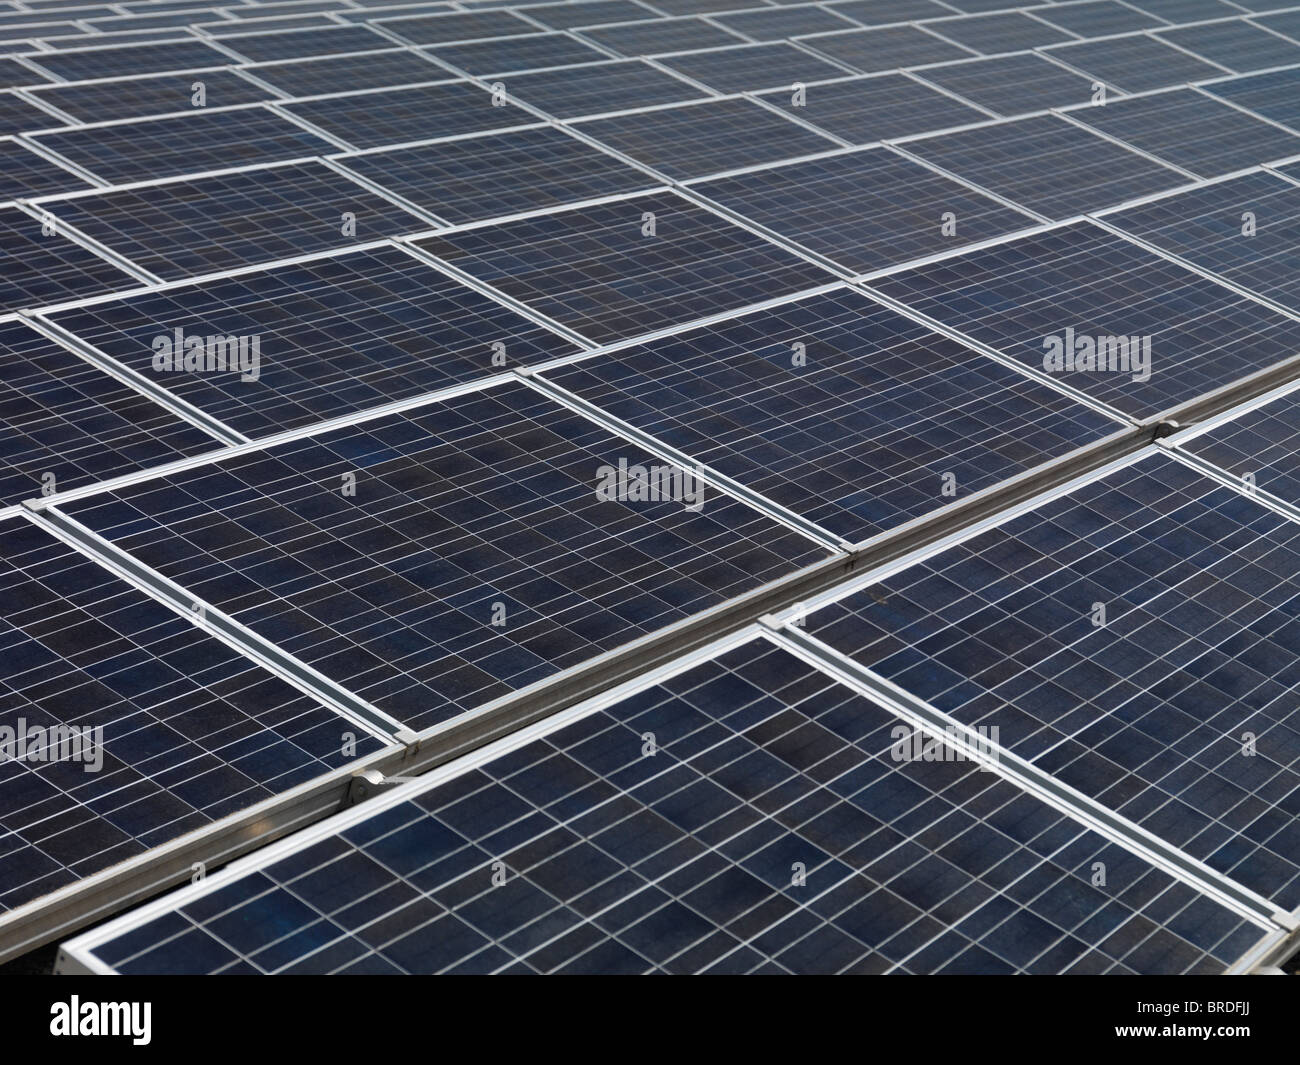 Large array of photovoltaic solar panels - Stock Image